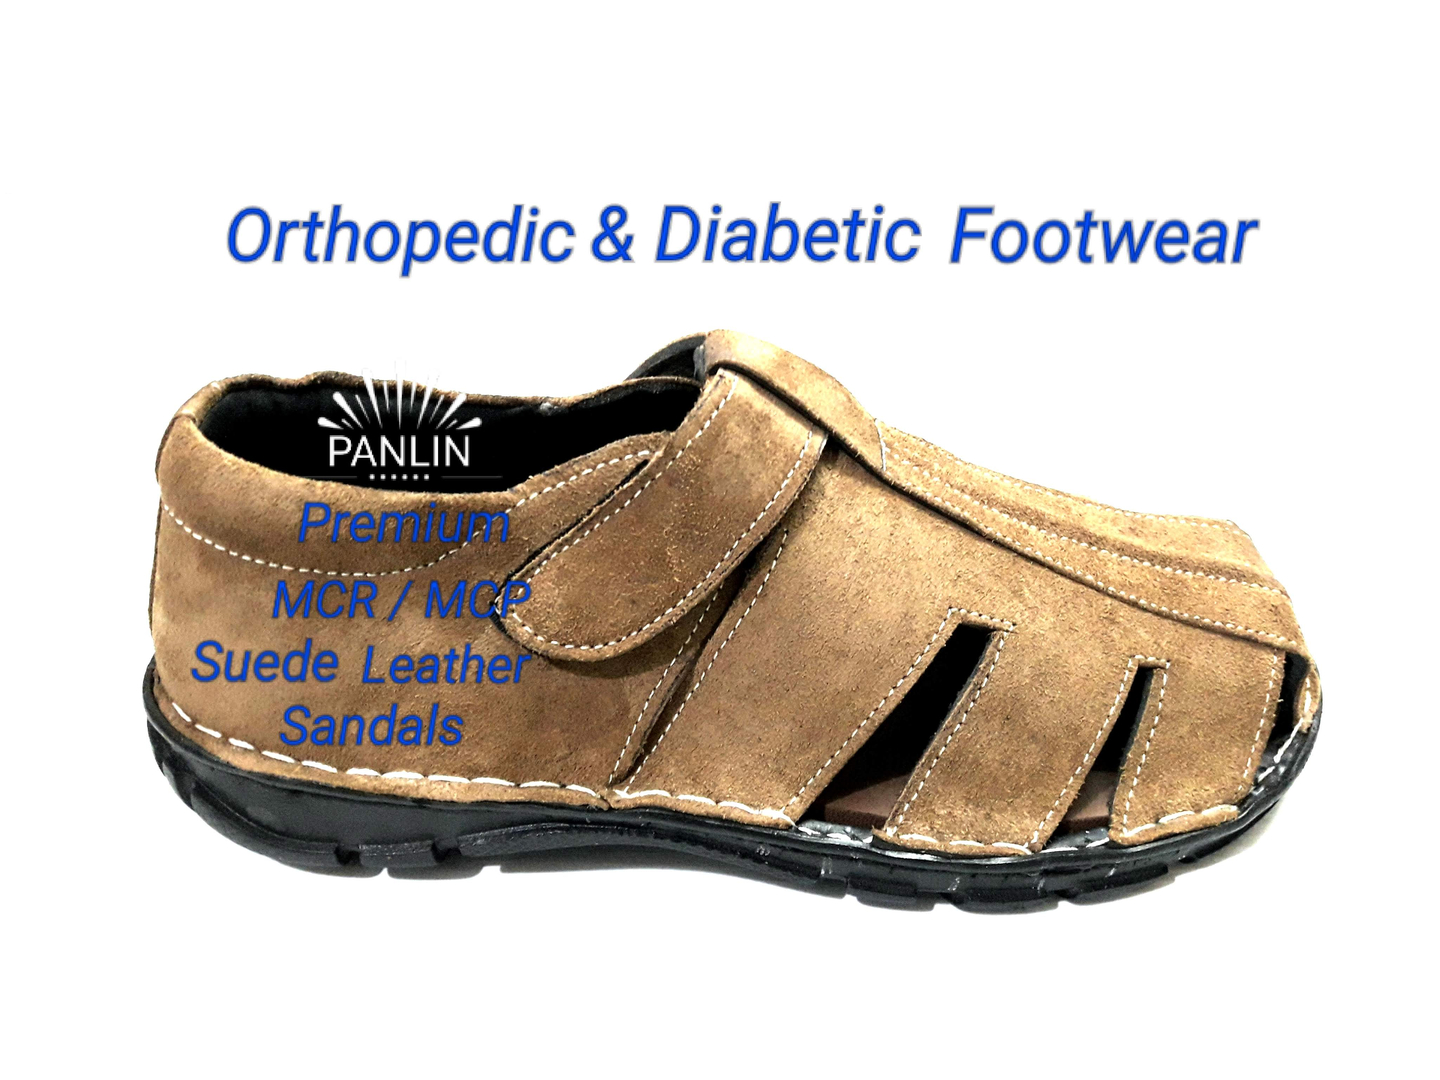 Panlin Footwear Diabetic Footwear Mcr Slippers Shoe Stores Shoes